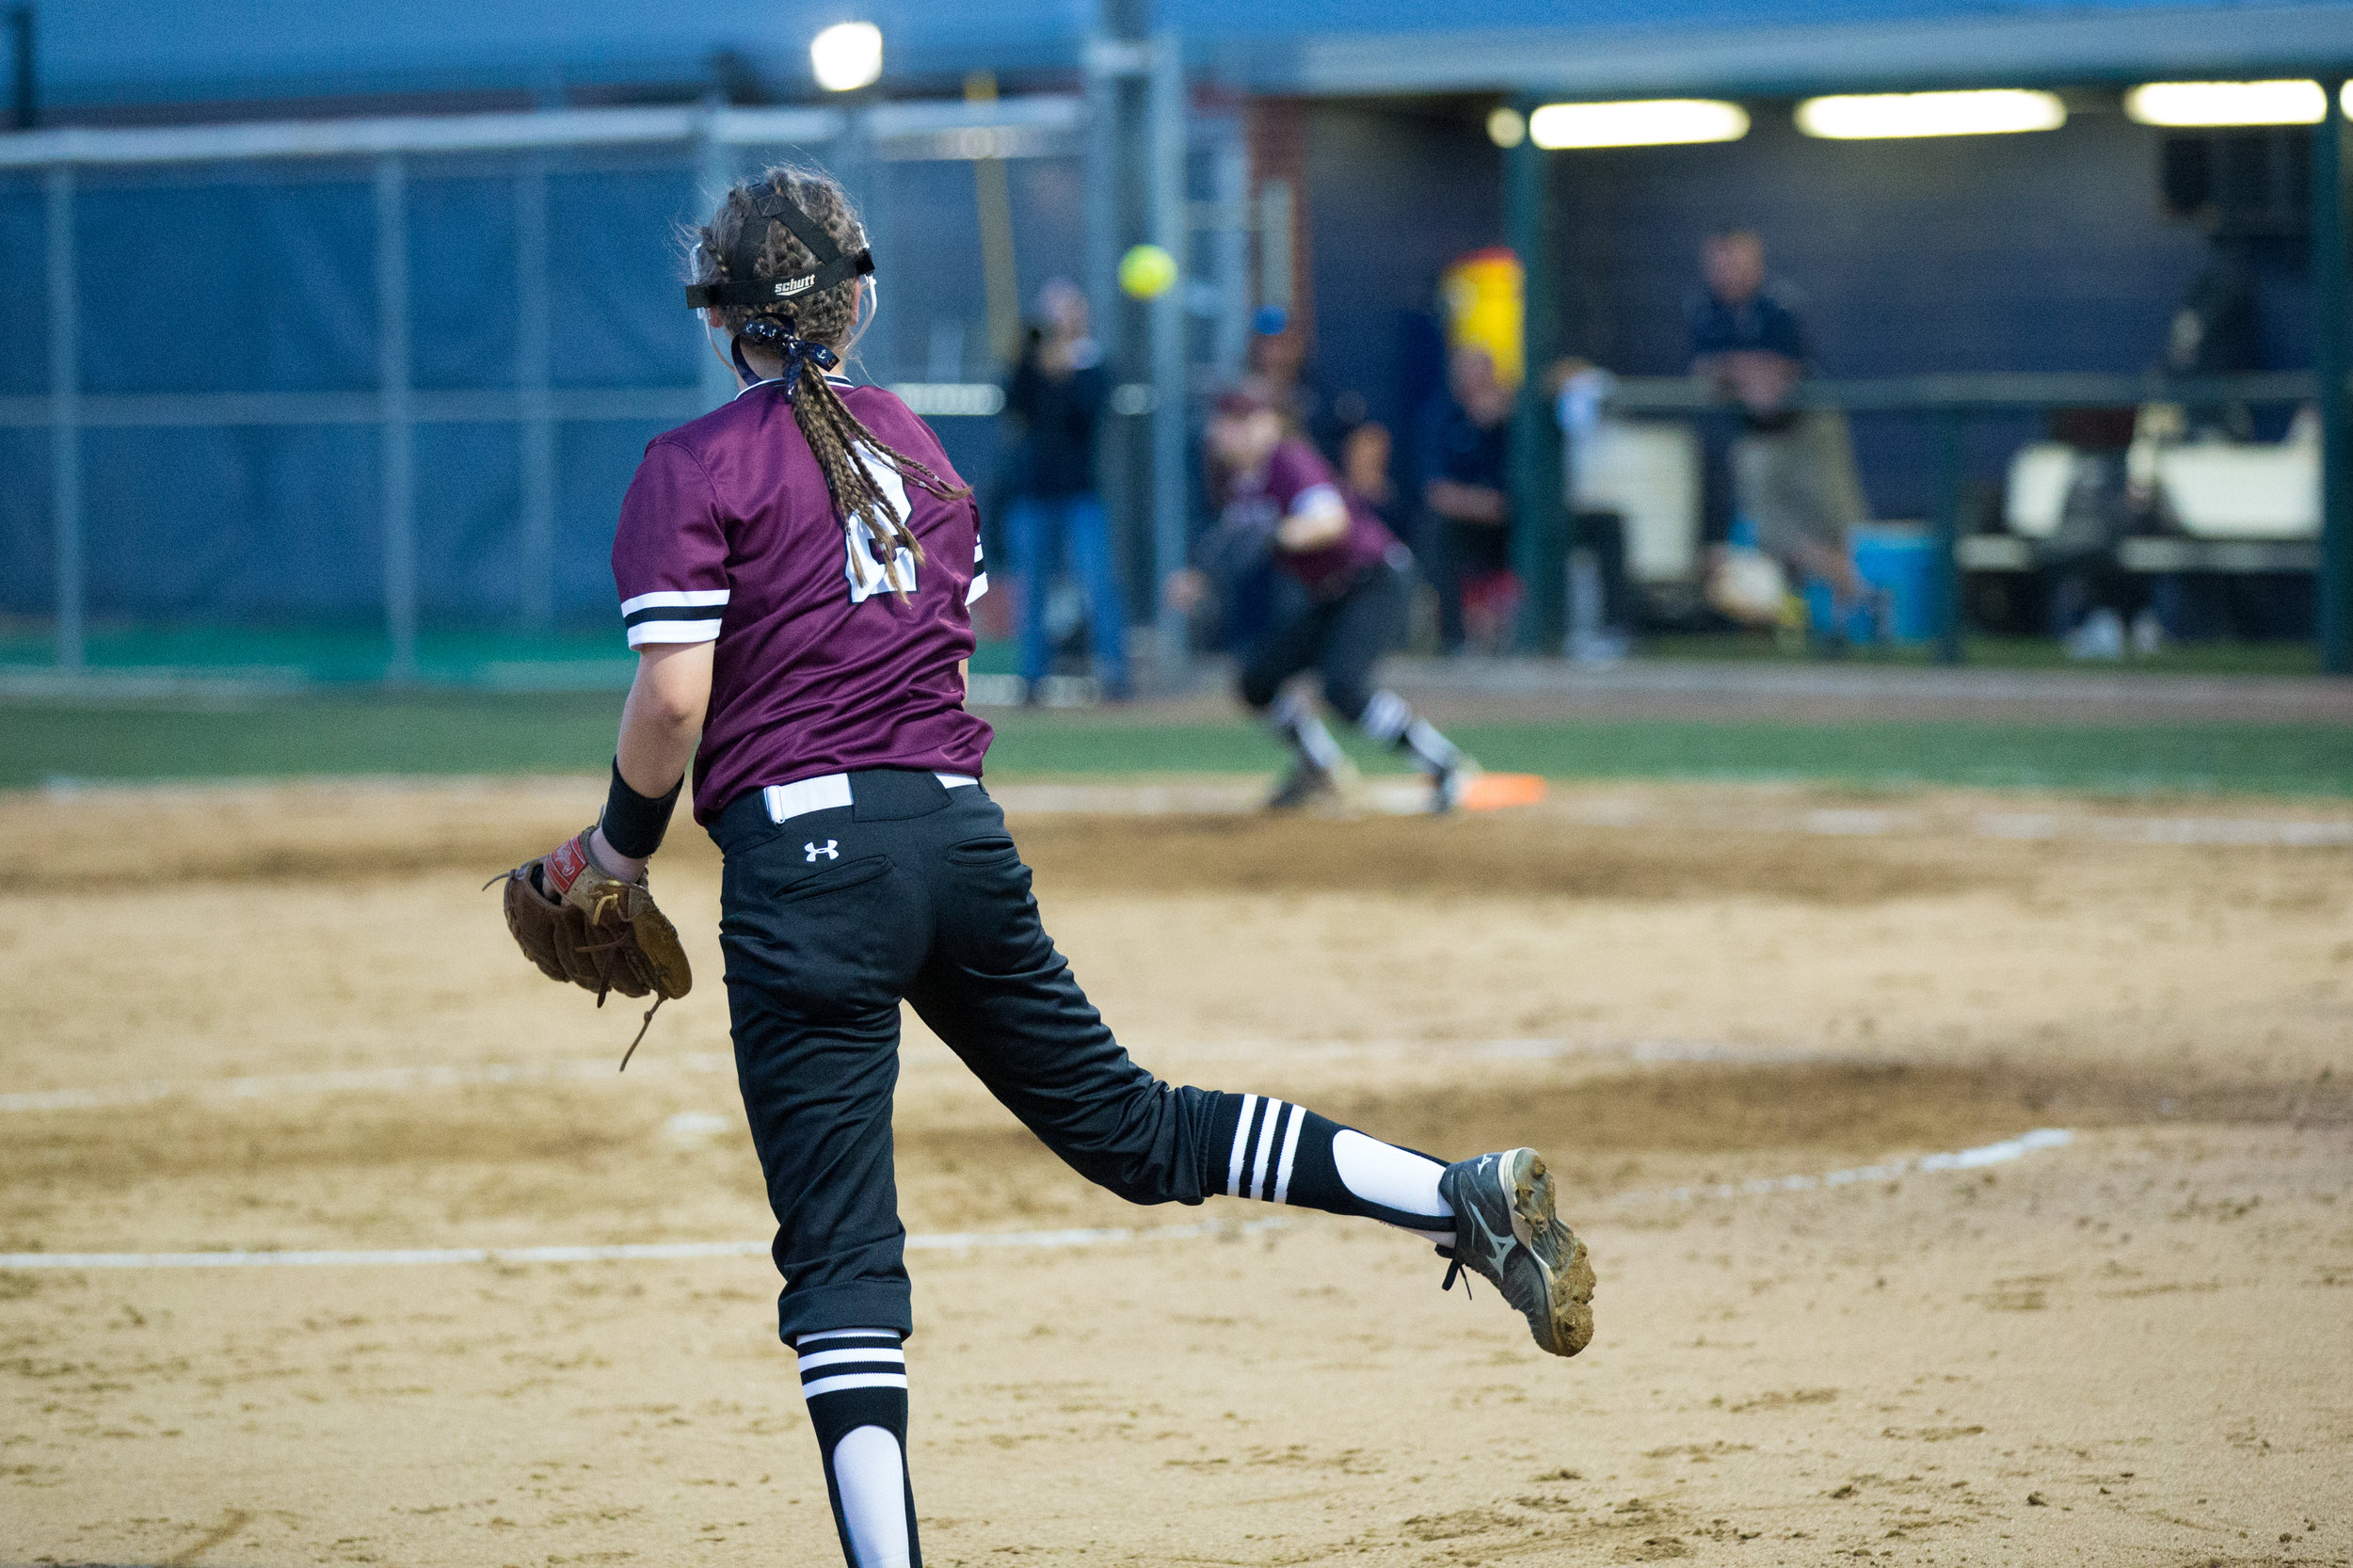 5_18 Wylie Softball-169.jpg